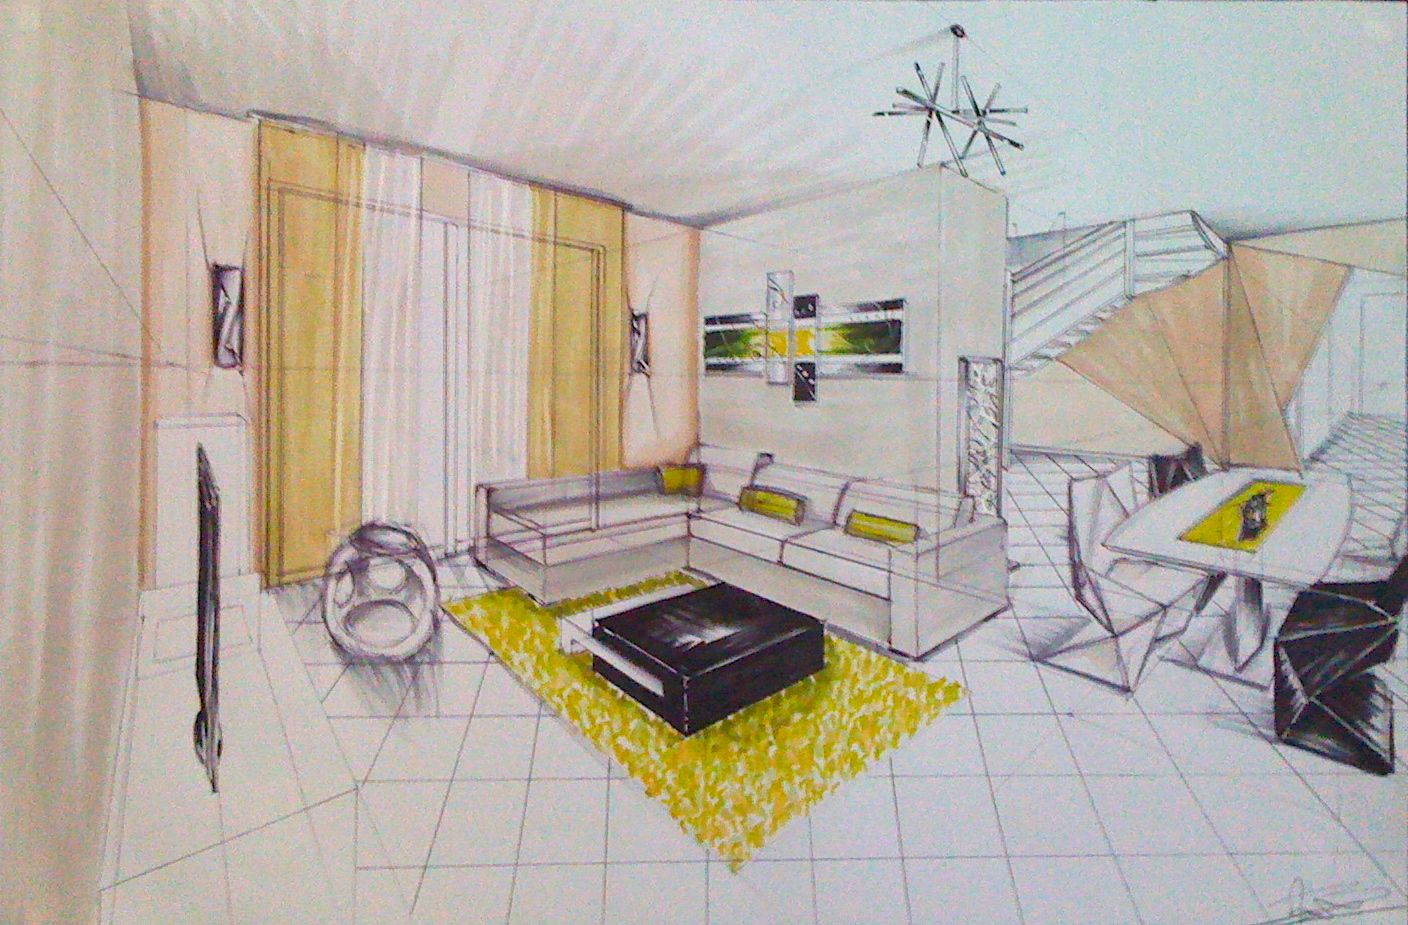 dessins d 39 interieur de maisons en perspective anabelle bochand cv architecte d 39 int rieur. Black Bedroom Furniture Sets. Home Design Ideas